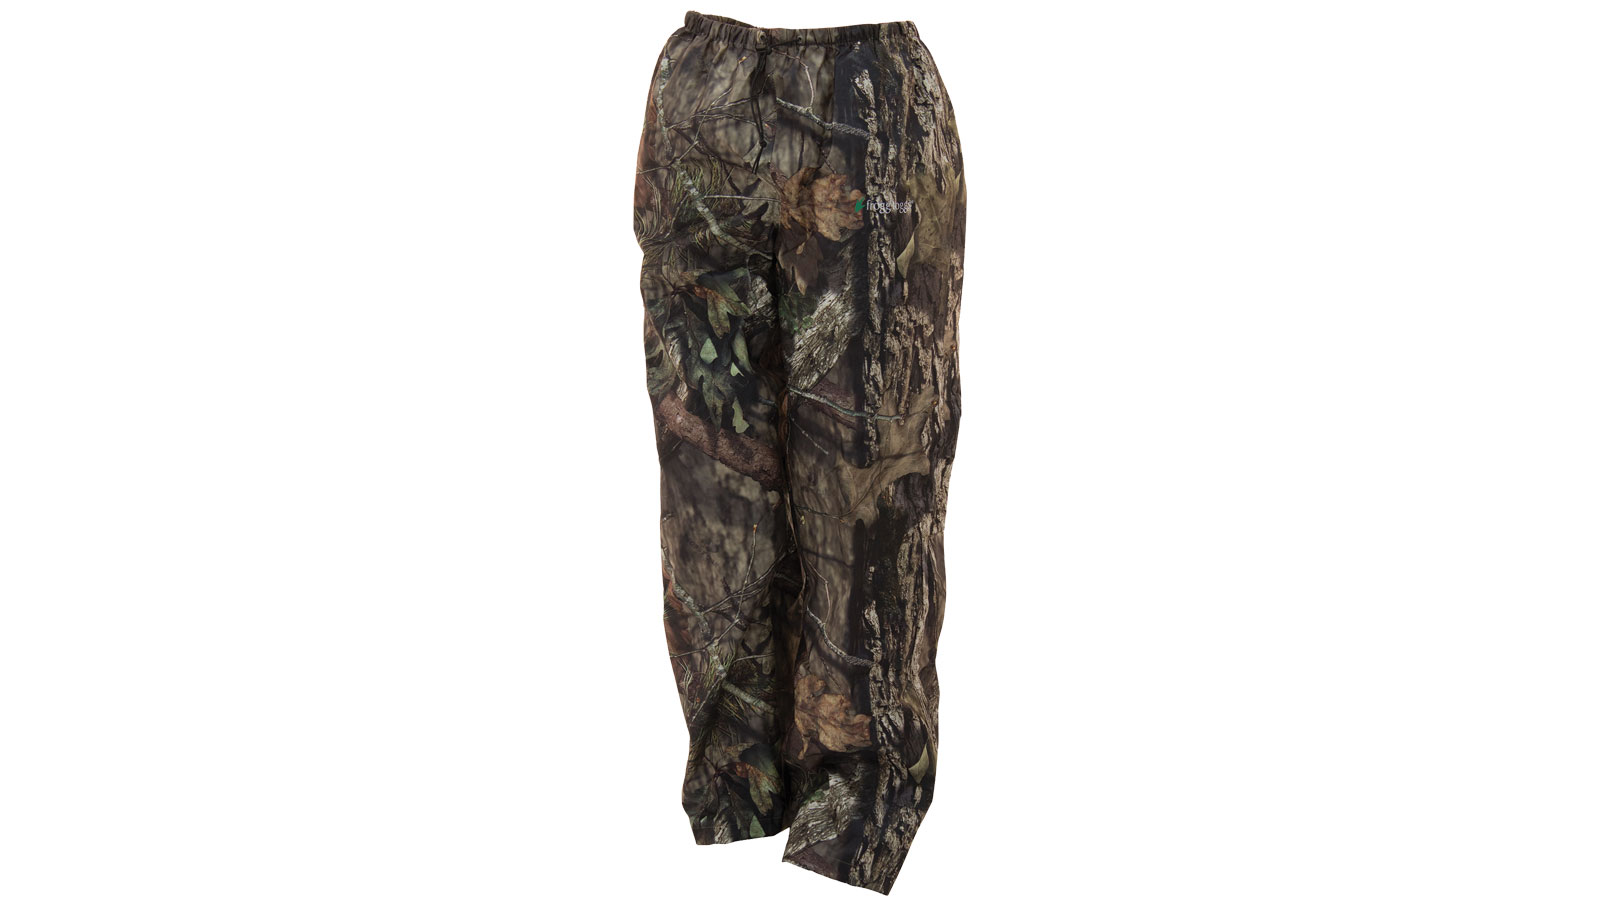 Frogg Toggs Pro Action Camo Pants Mossy Oak Break Up Country, Large